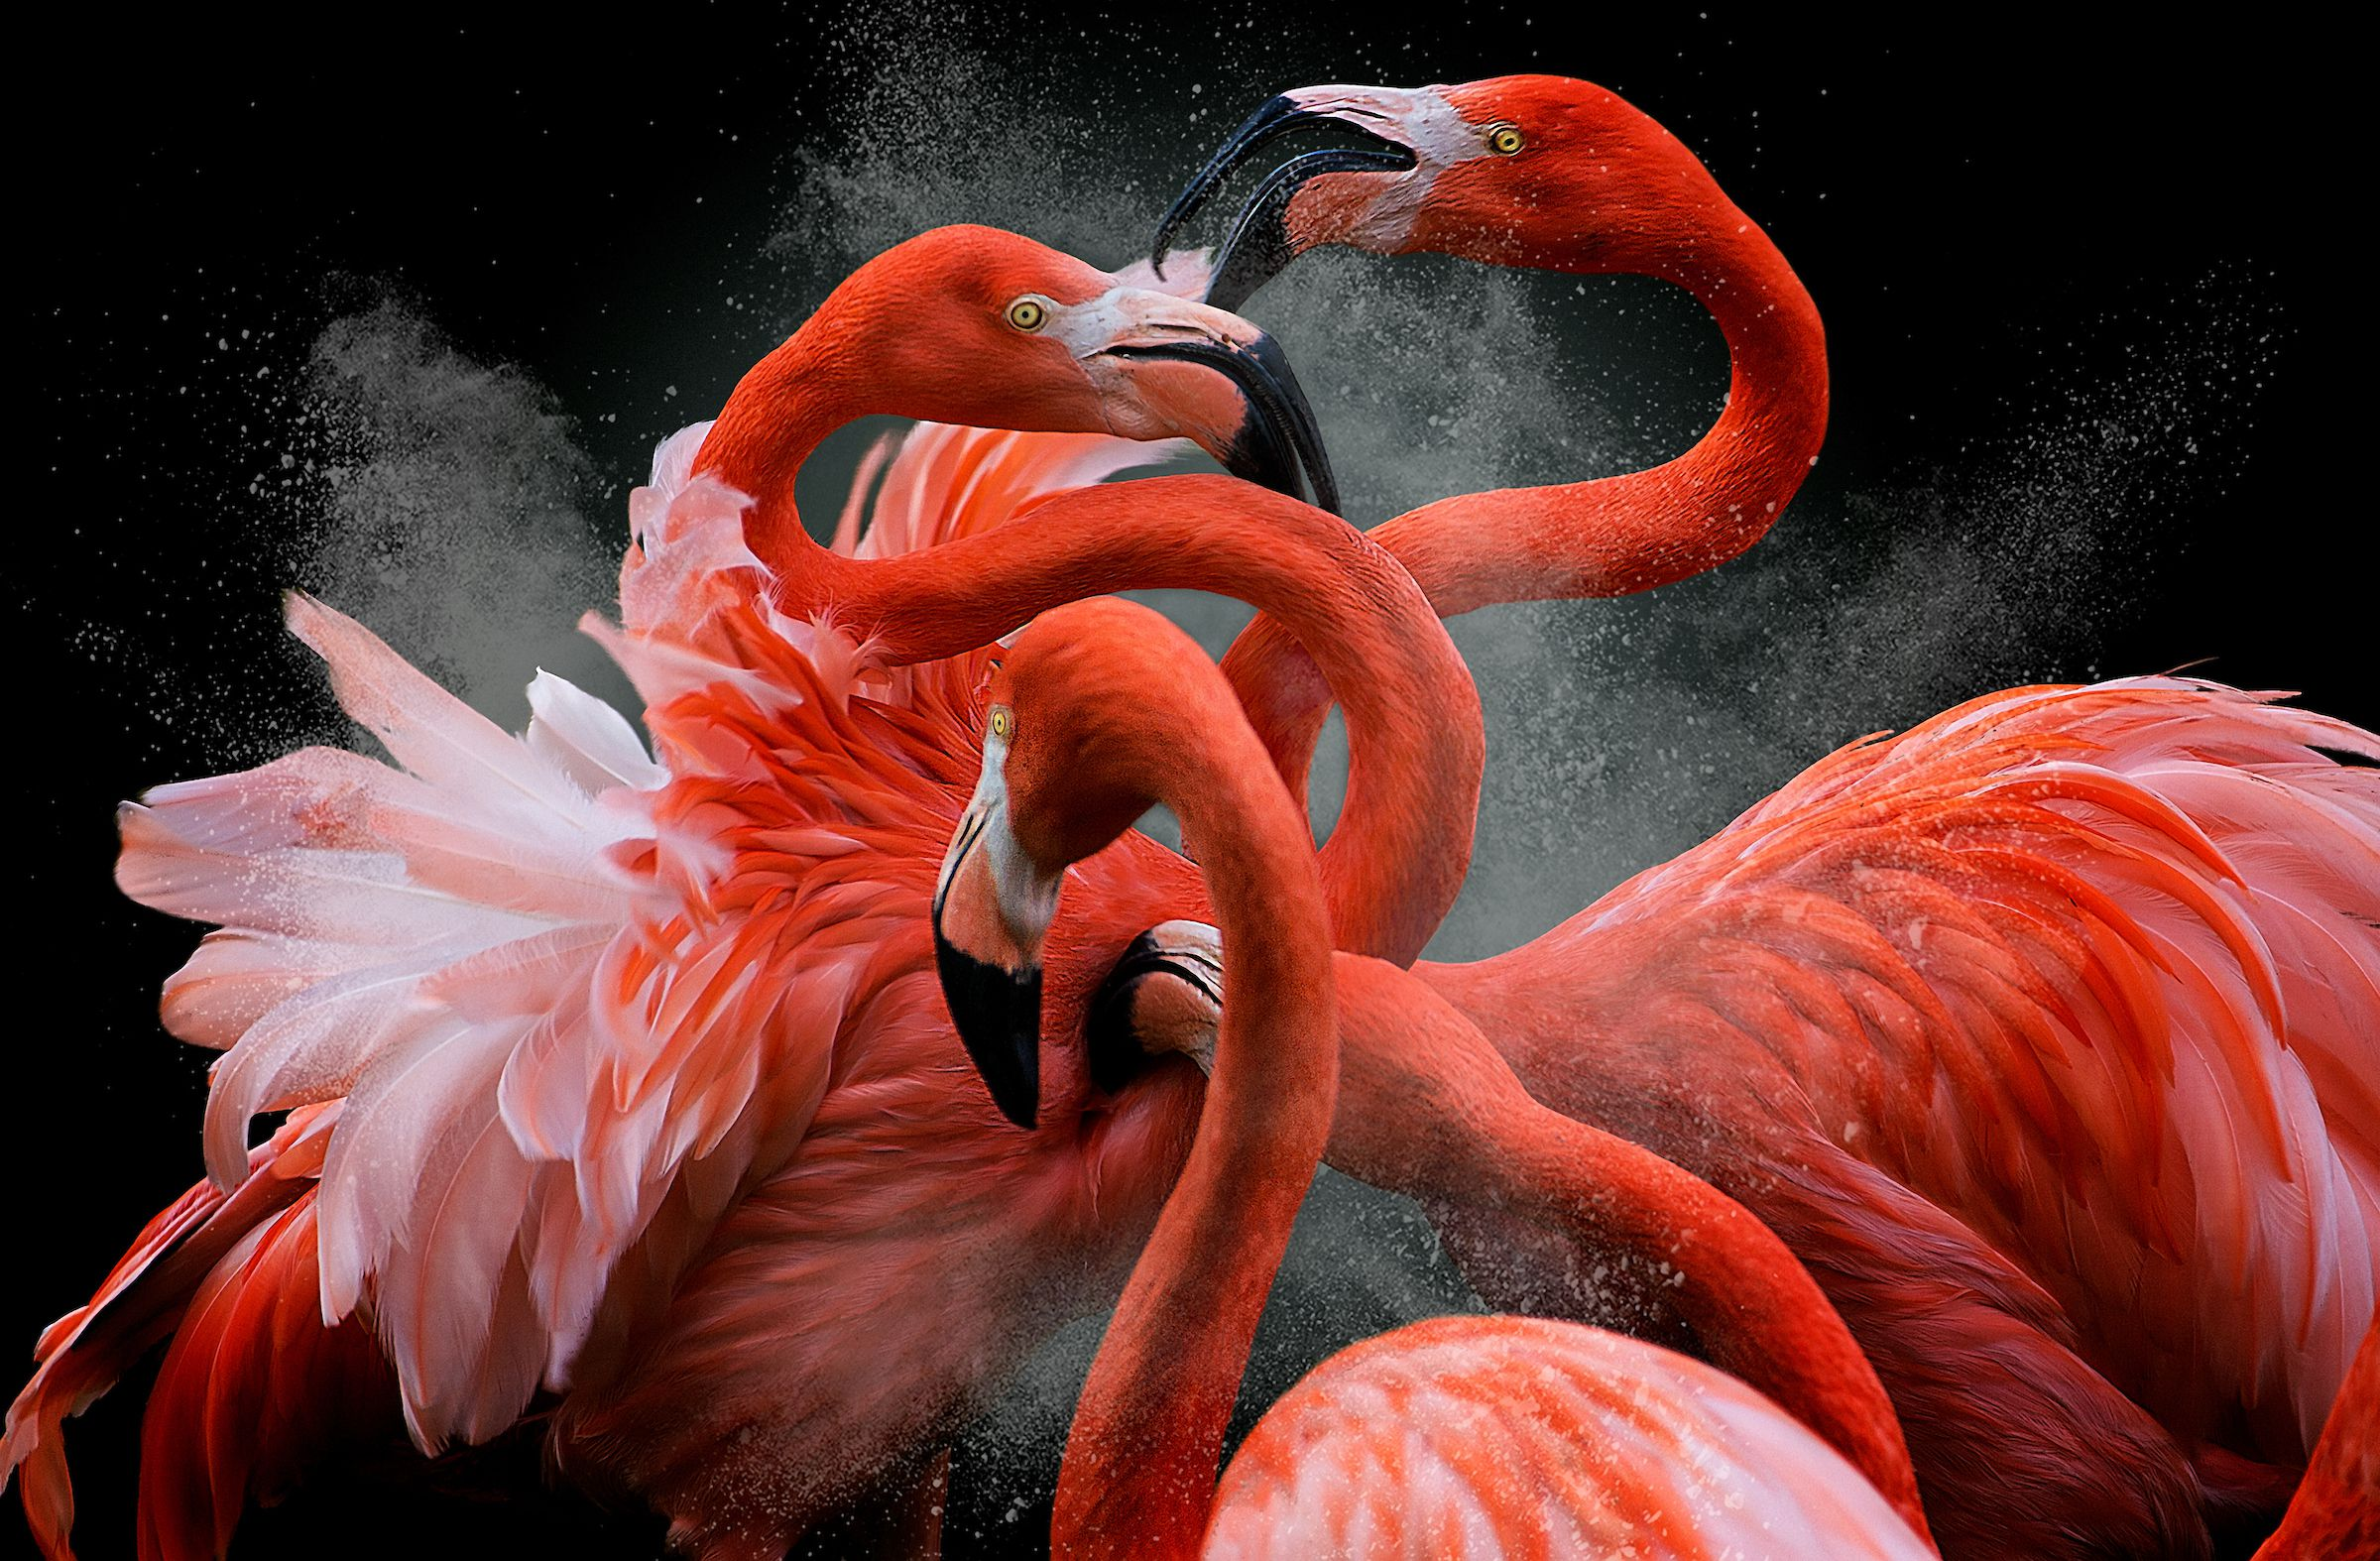 Stunning Images Focus on Birds at Their Finest